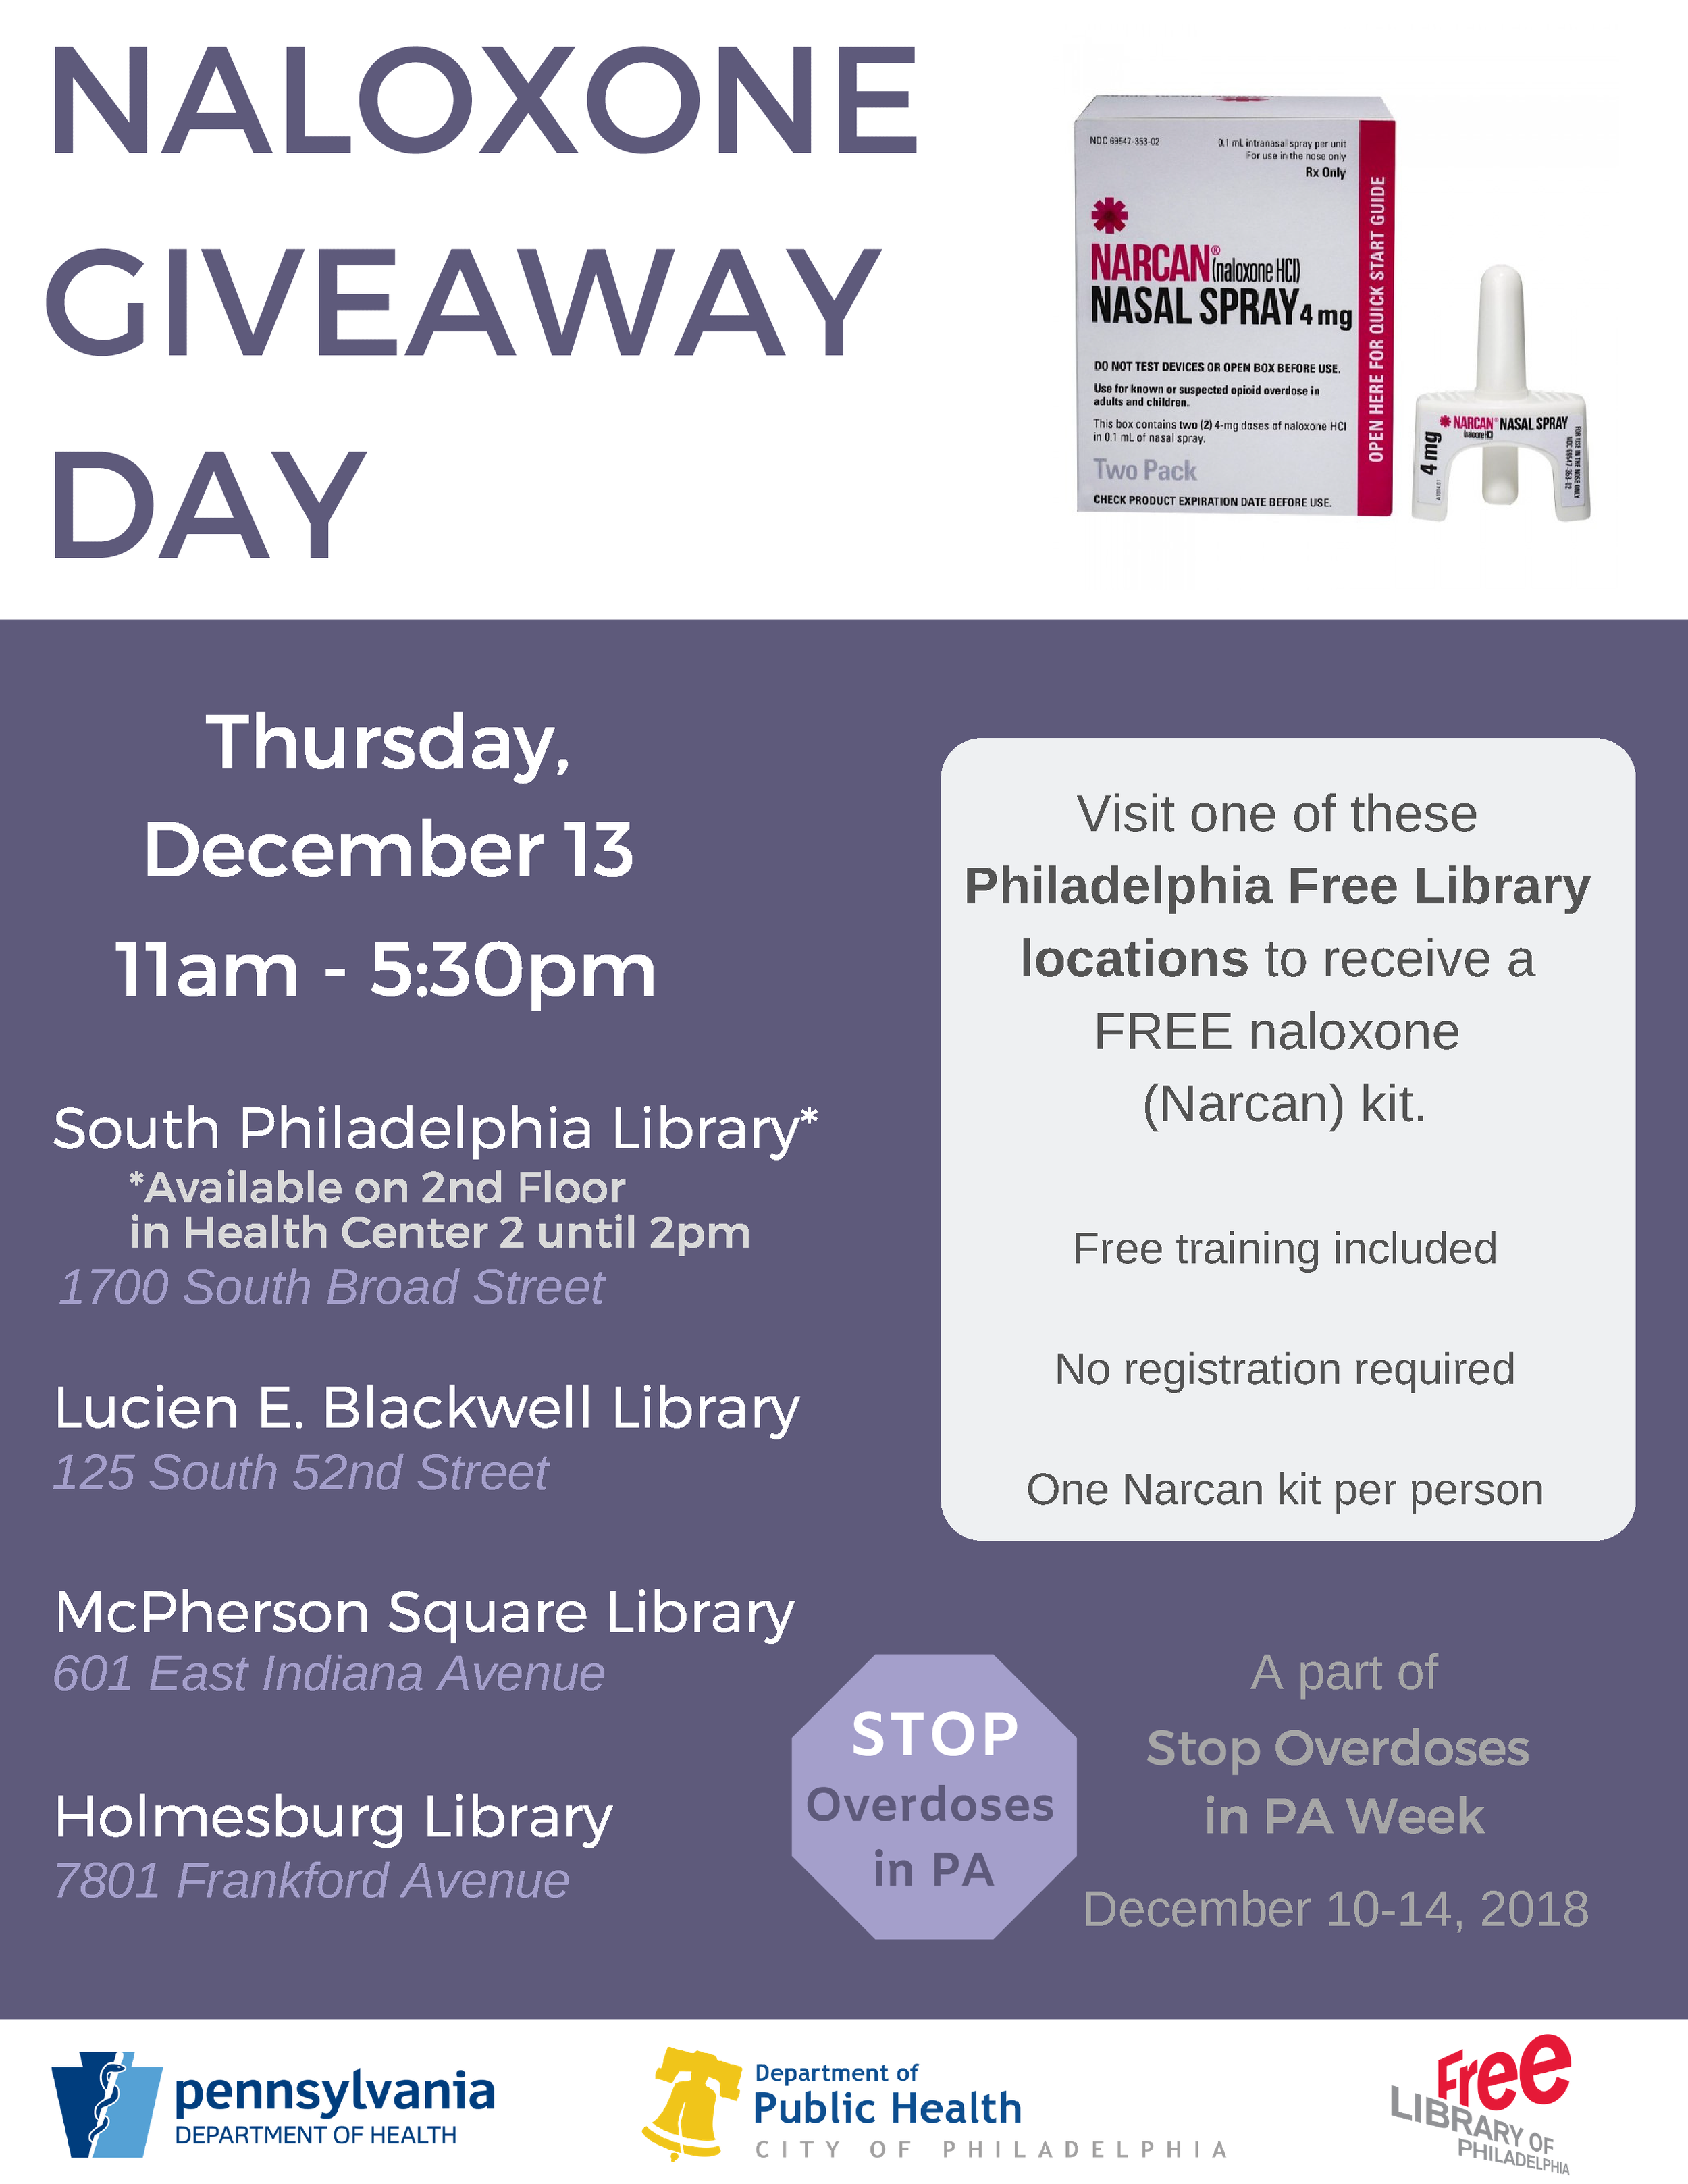 NALOXONE GIVEAWAYDAY - Thursday, December 13th11:00am - 5:30pm